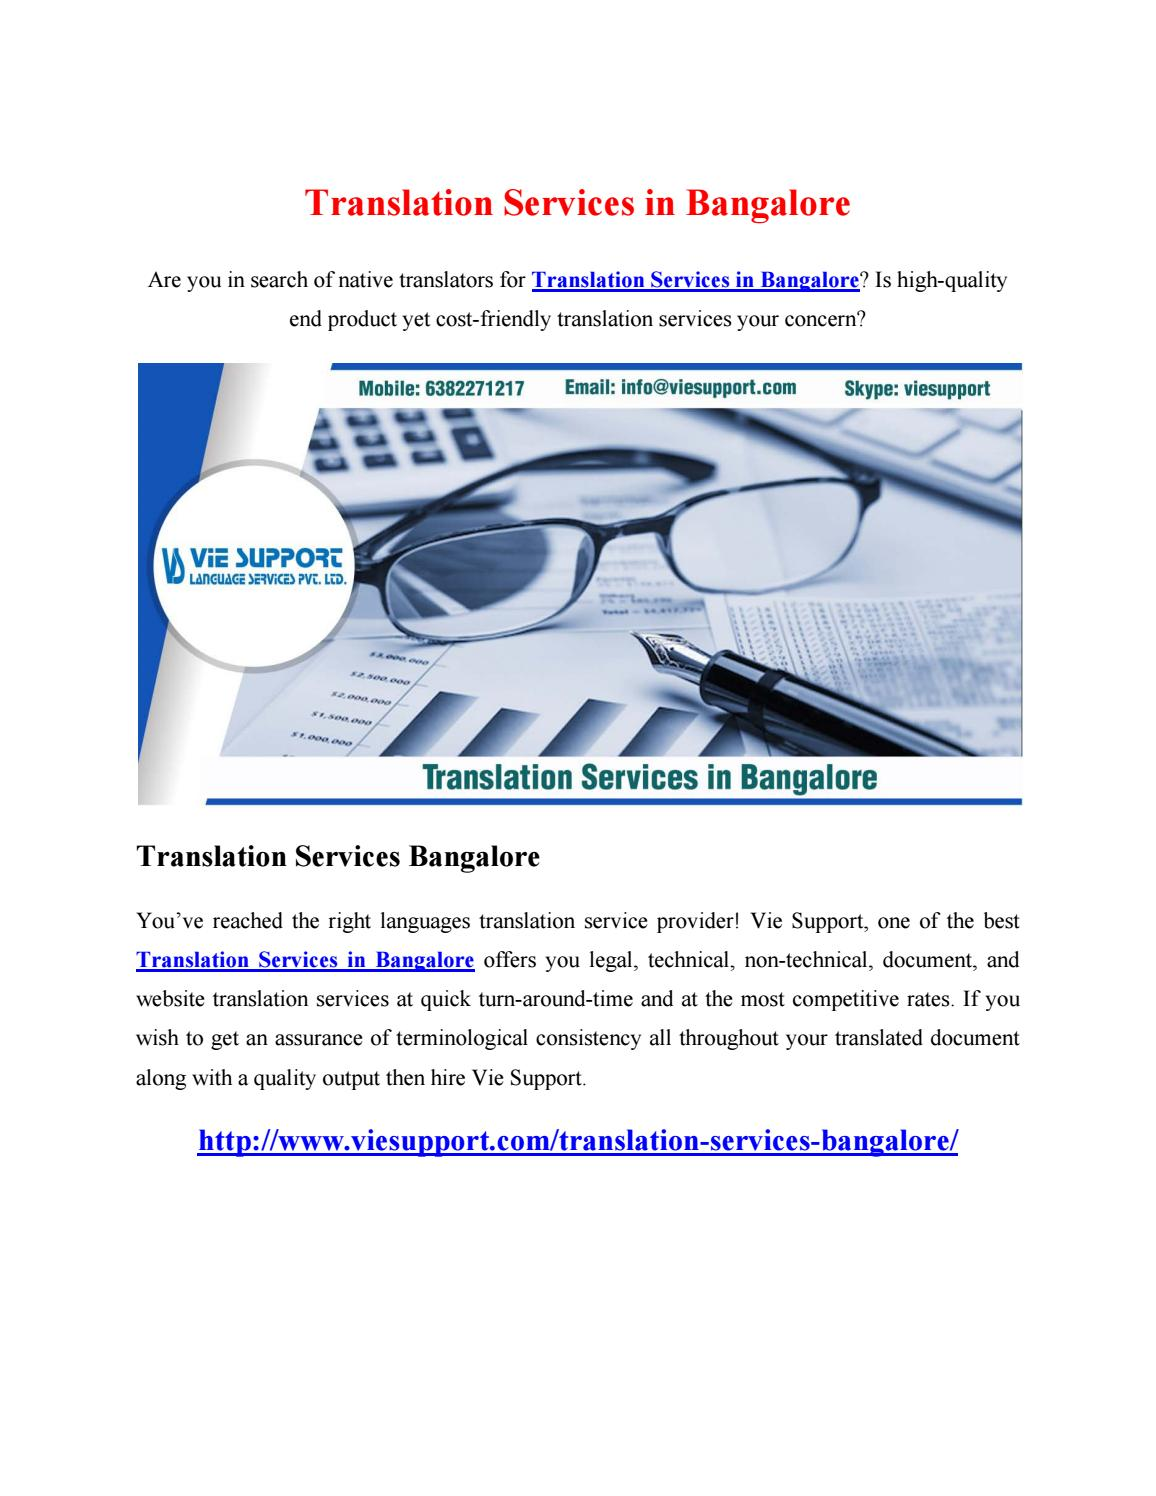 Translation Services in Bangalore by Vie Support Language